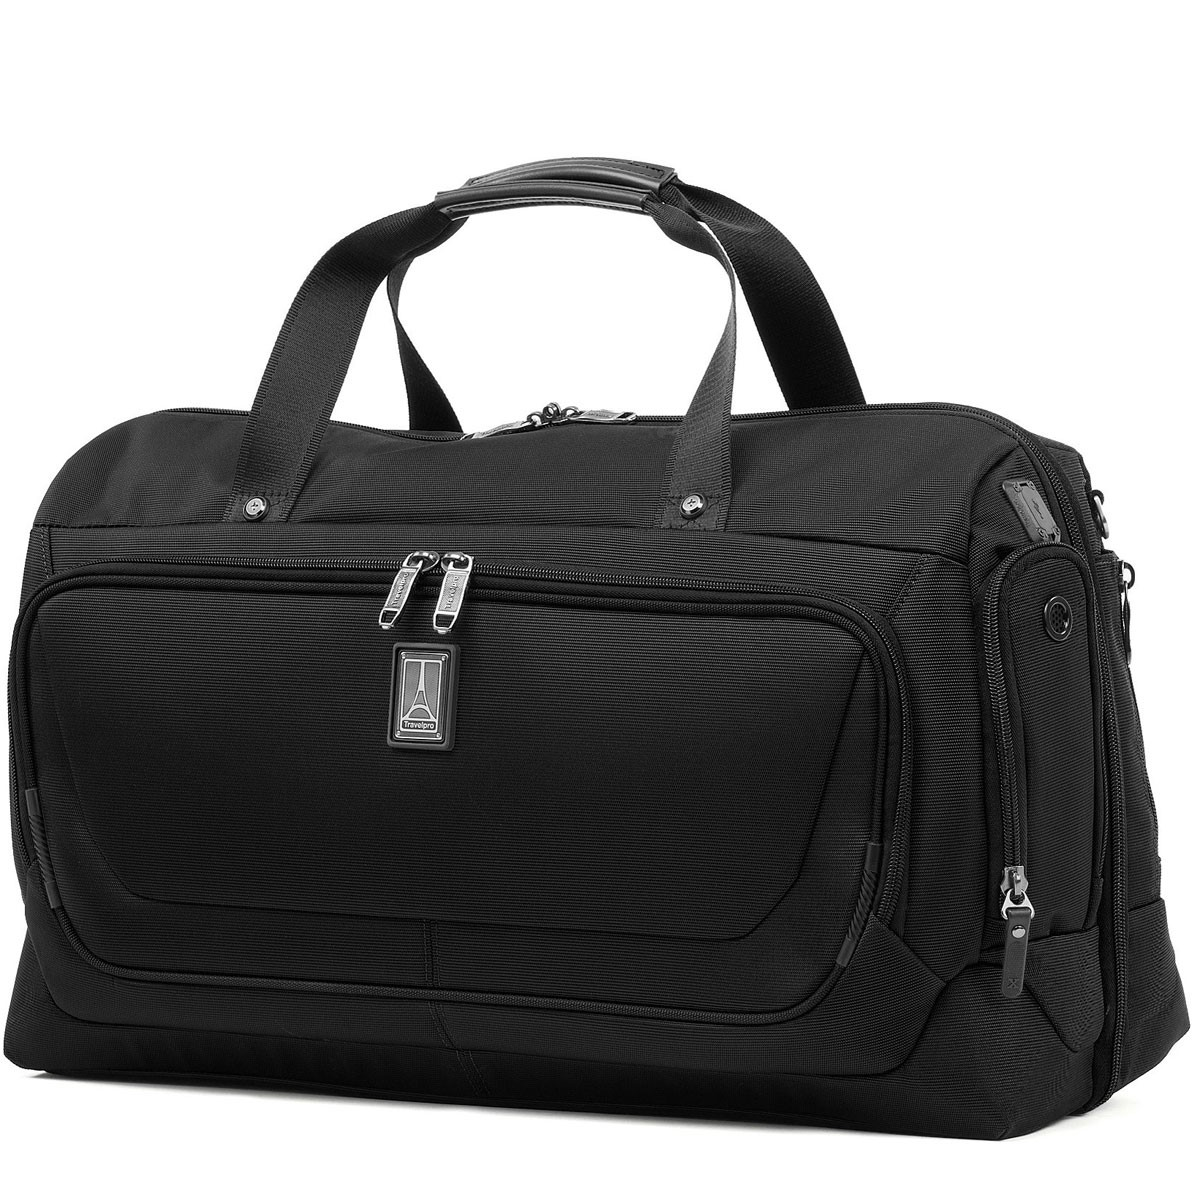 "Travelpro Crew 11 22"" Carry-On Smart Duffel"